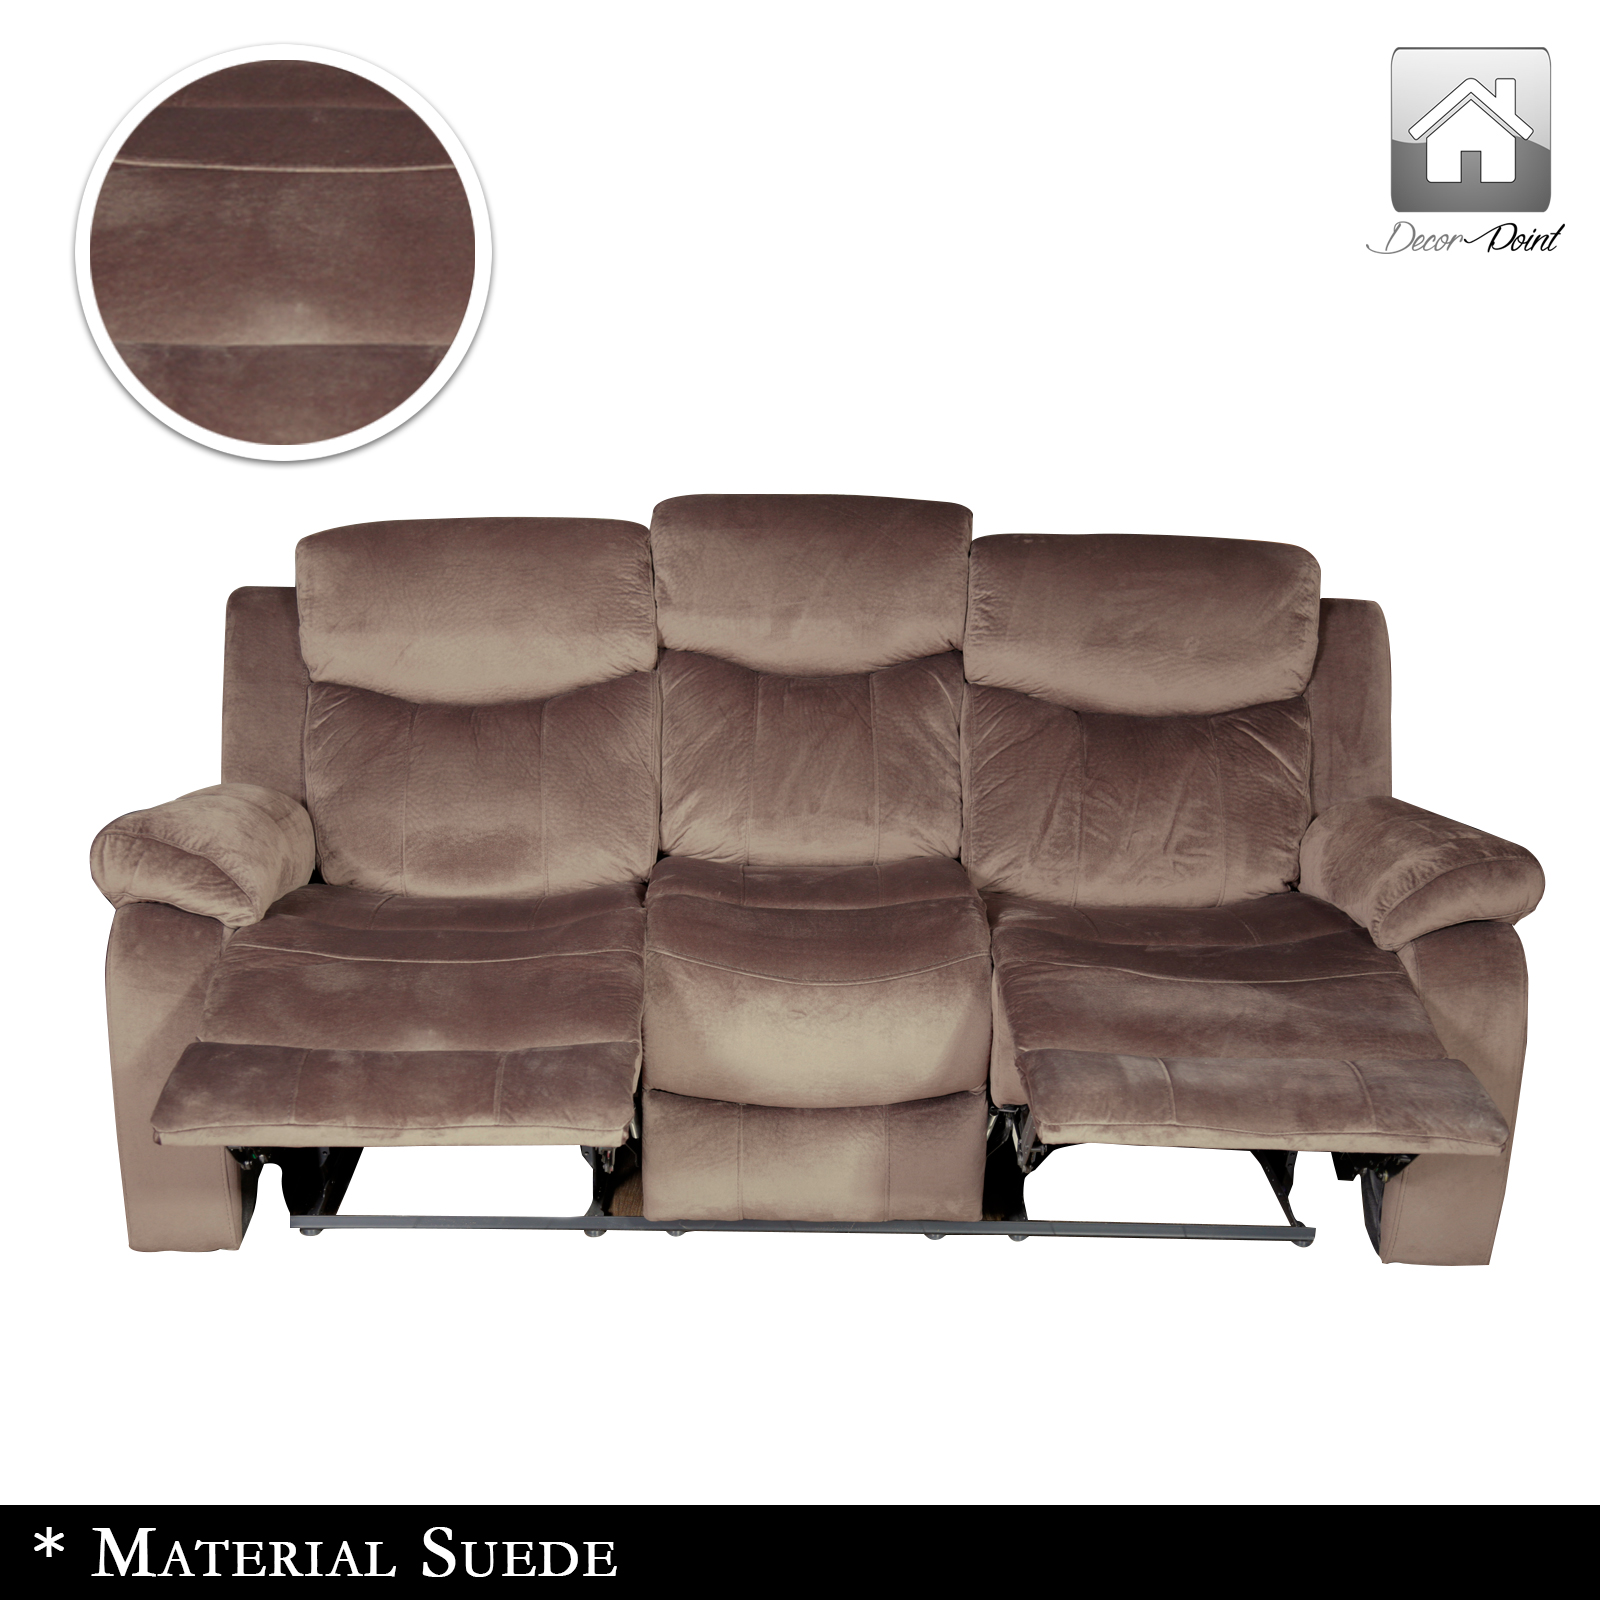 New Luxury Poland Suede Leather 3 Seater Recliners Sofa